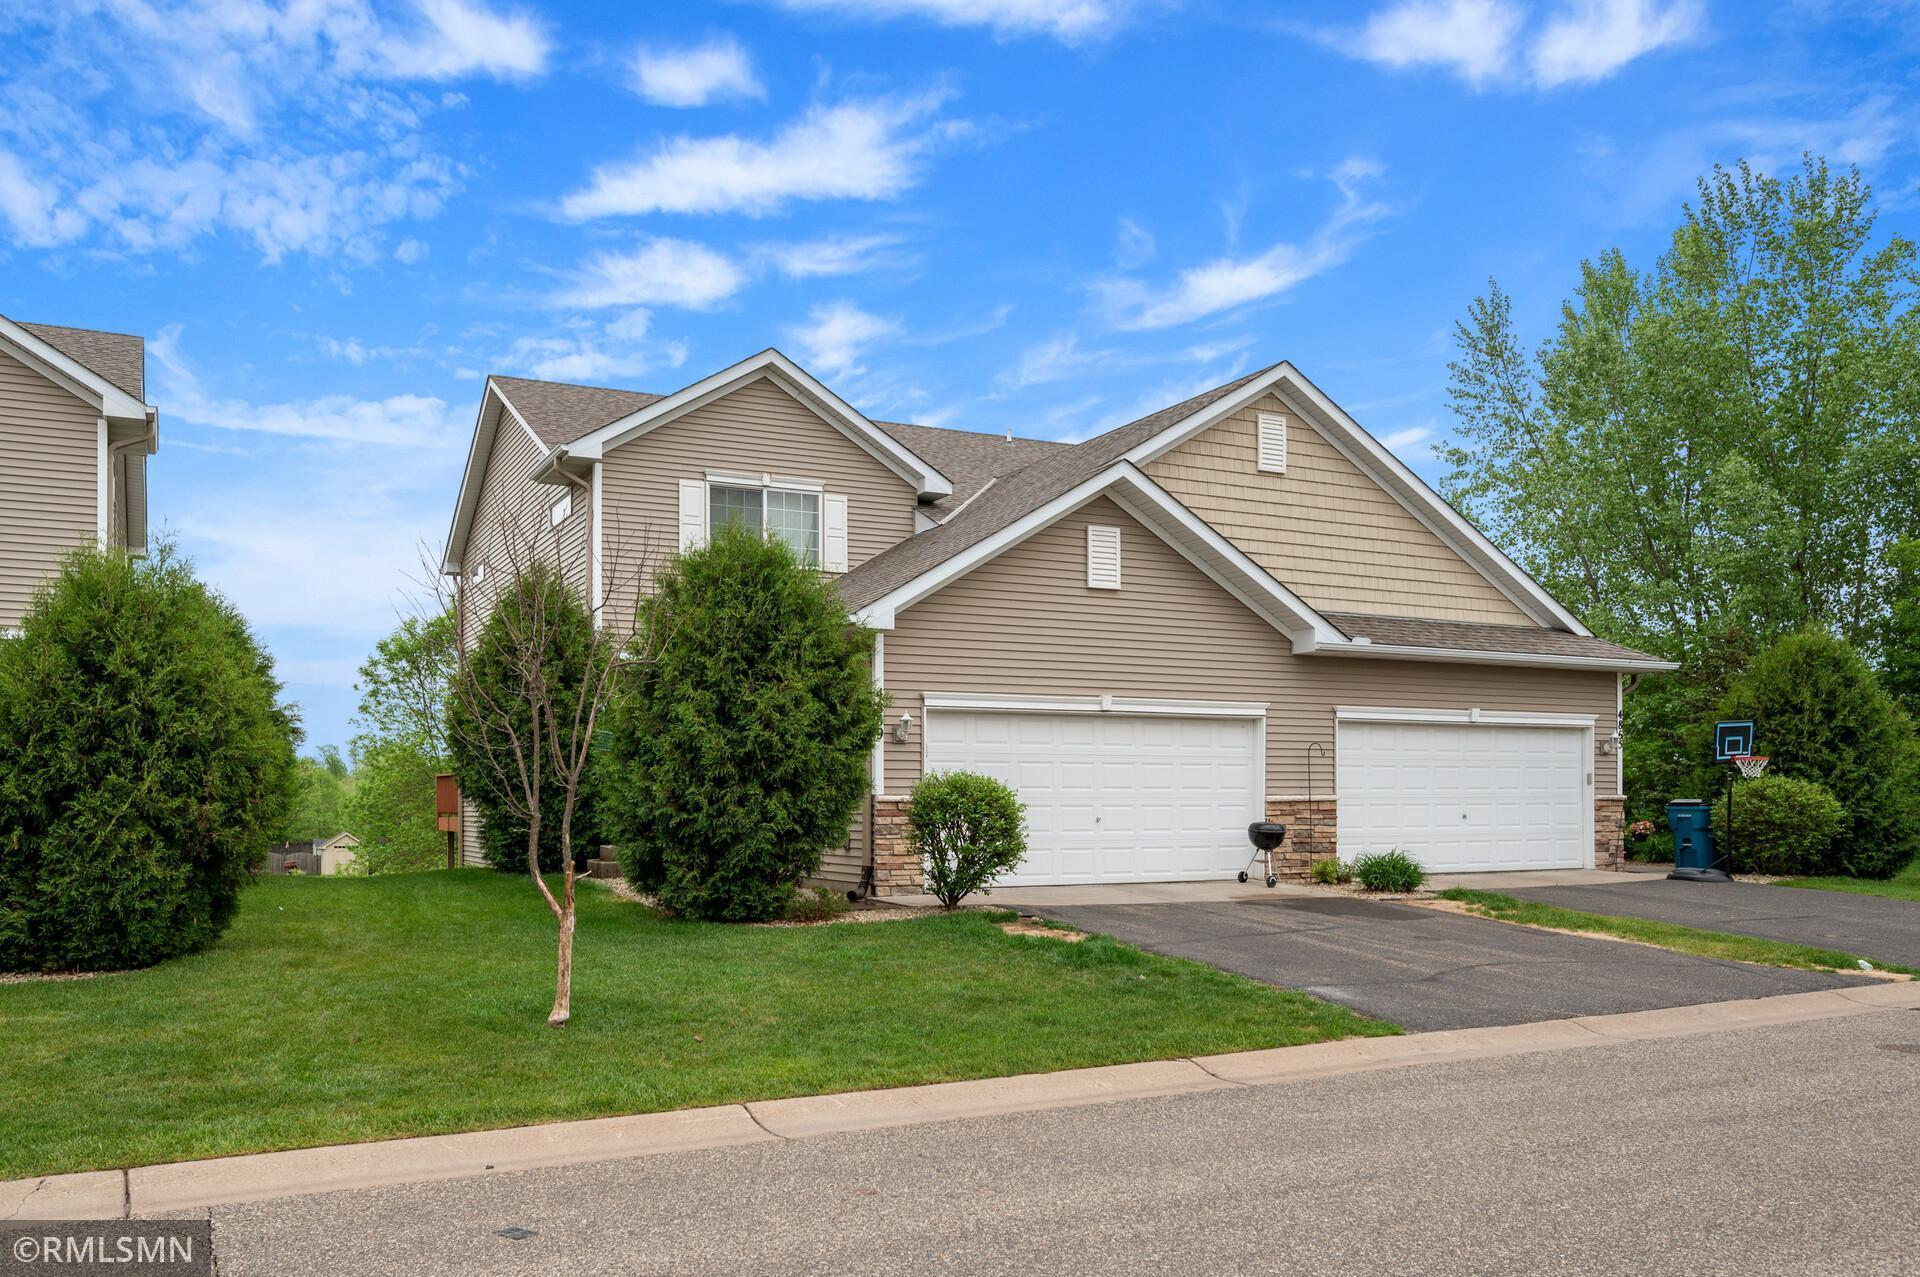 4859 200th Street N, Forest Lake MN 55025 - Photo 1